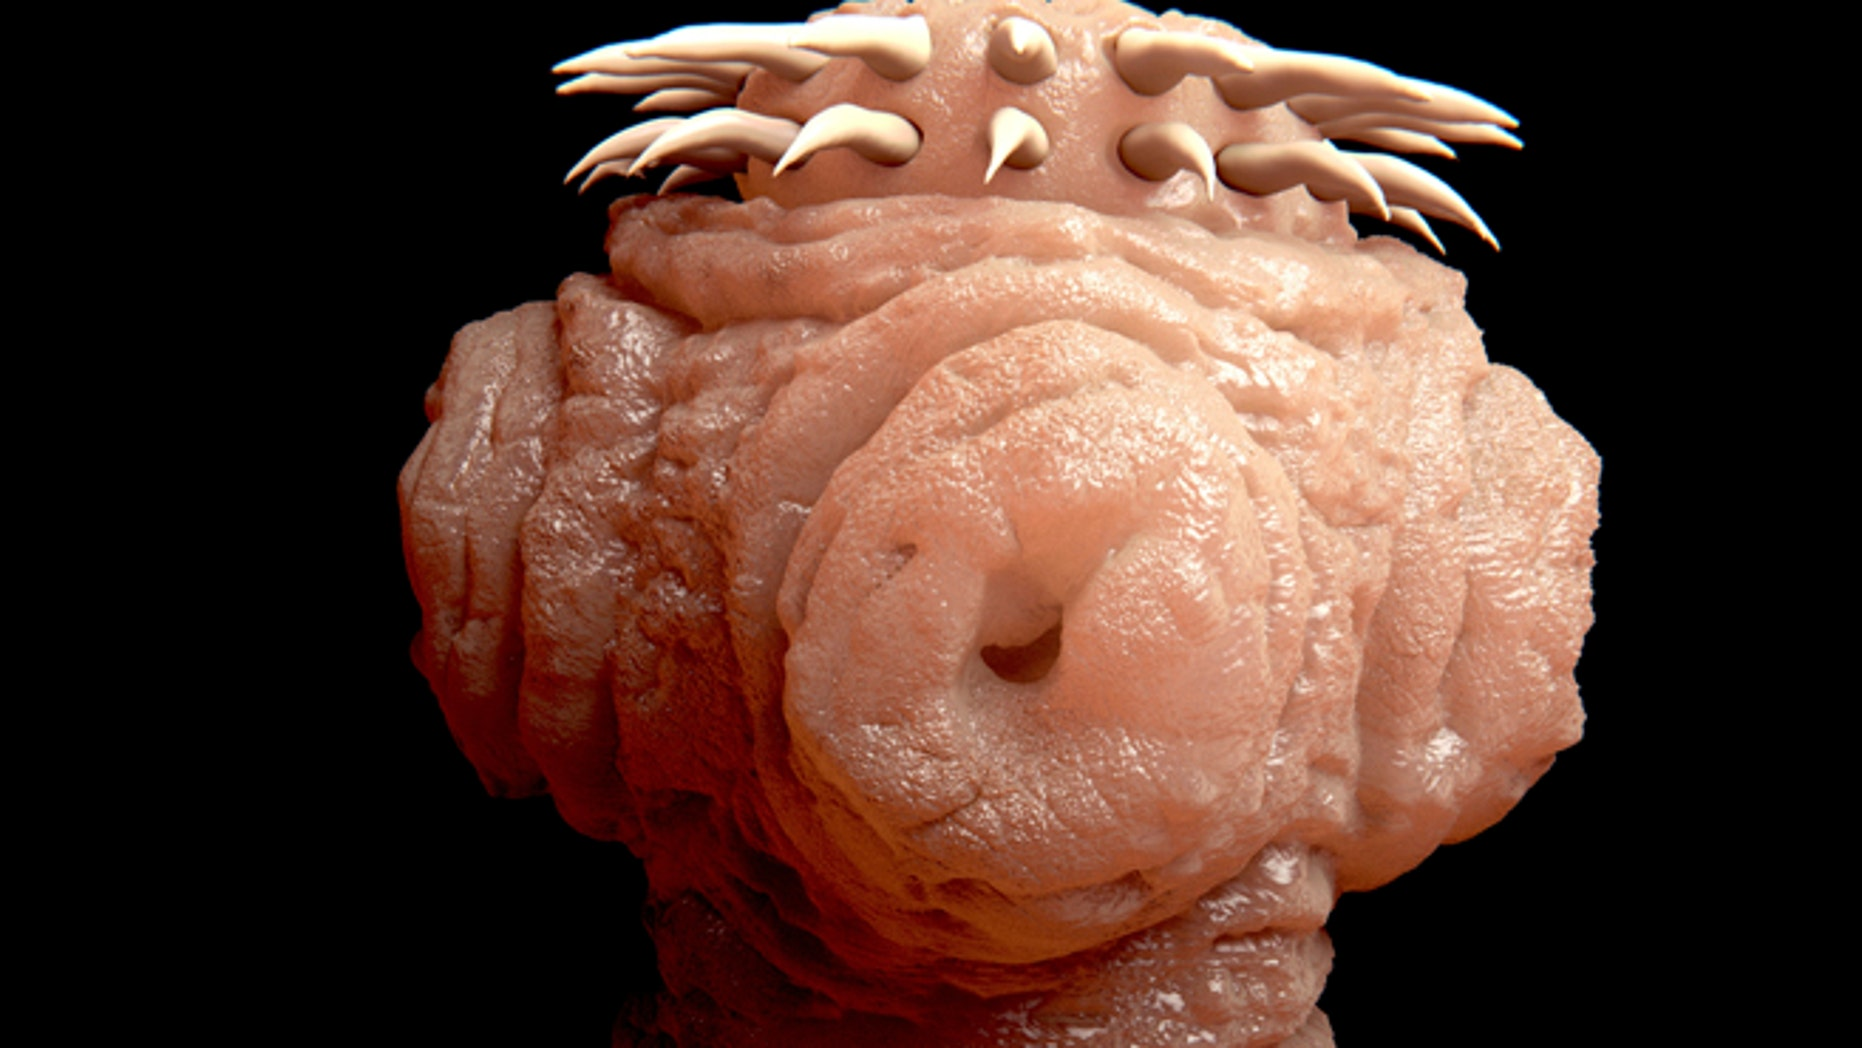 A look at a tapeworm under a microscope.